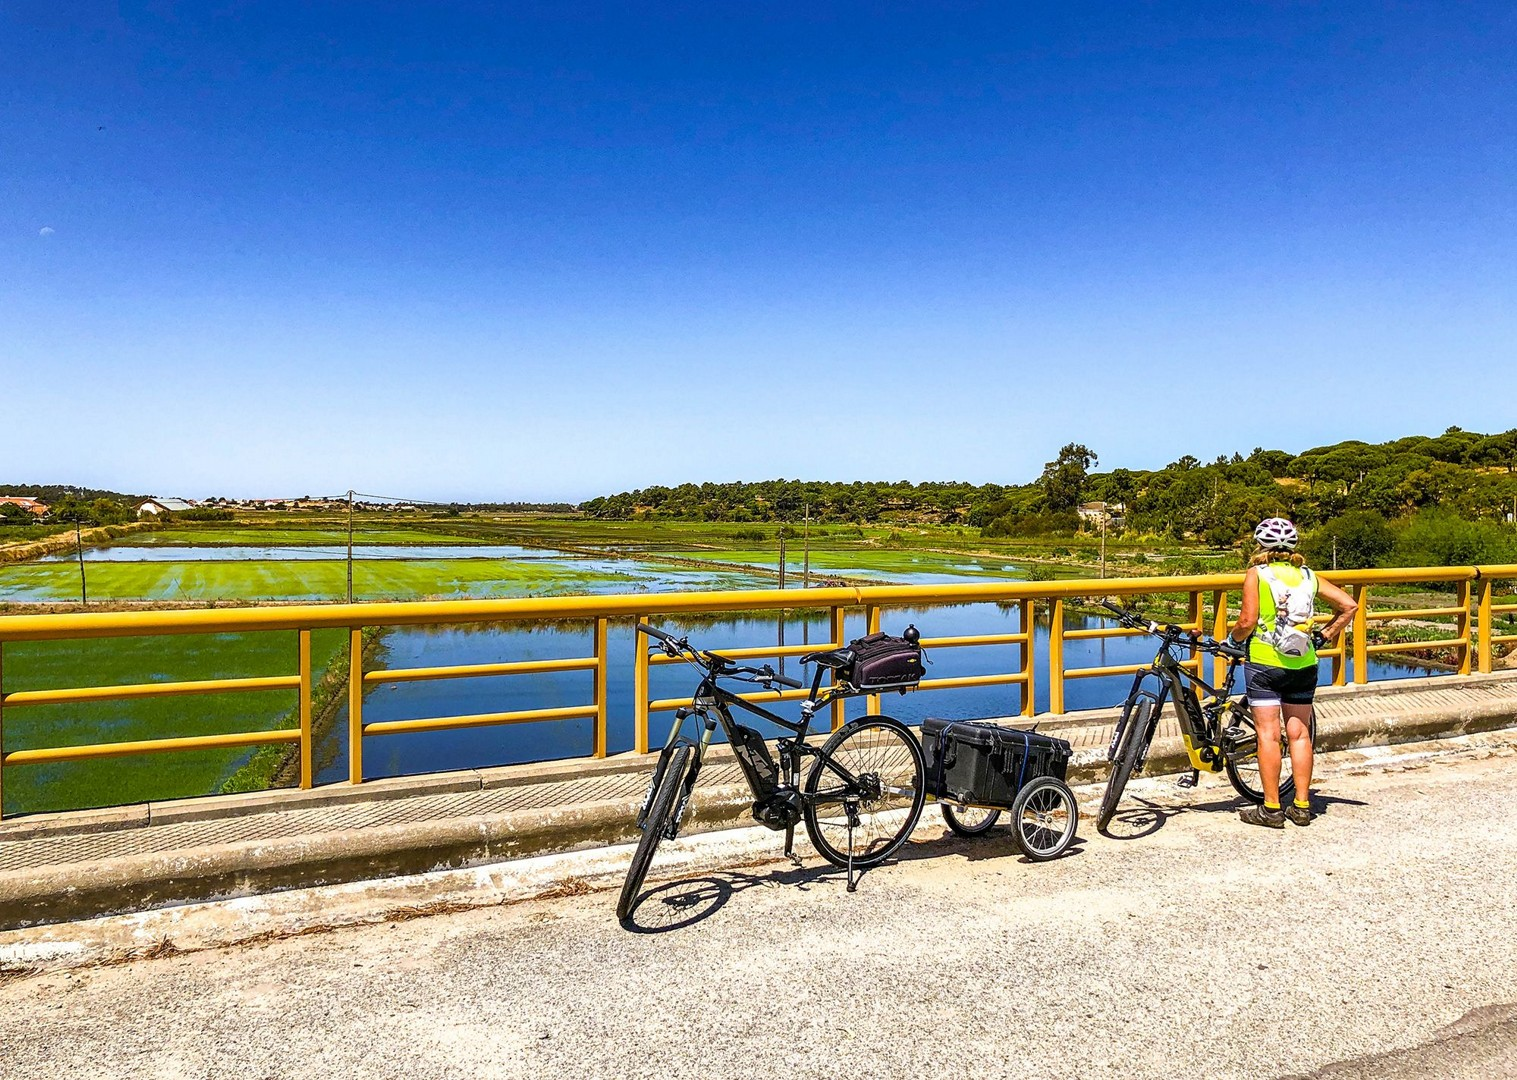 bike-cycling-holiday-portugal-algarve-and-alentejo.jpg - Portugal - Alentejo and Algarve Coastal Explorer - Self-Guided Leisure Cycling Holiday - Leisure Cycling